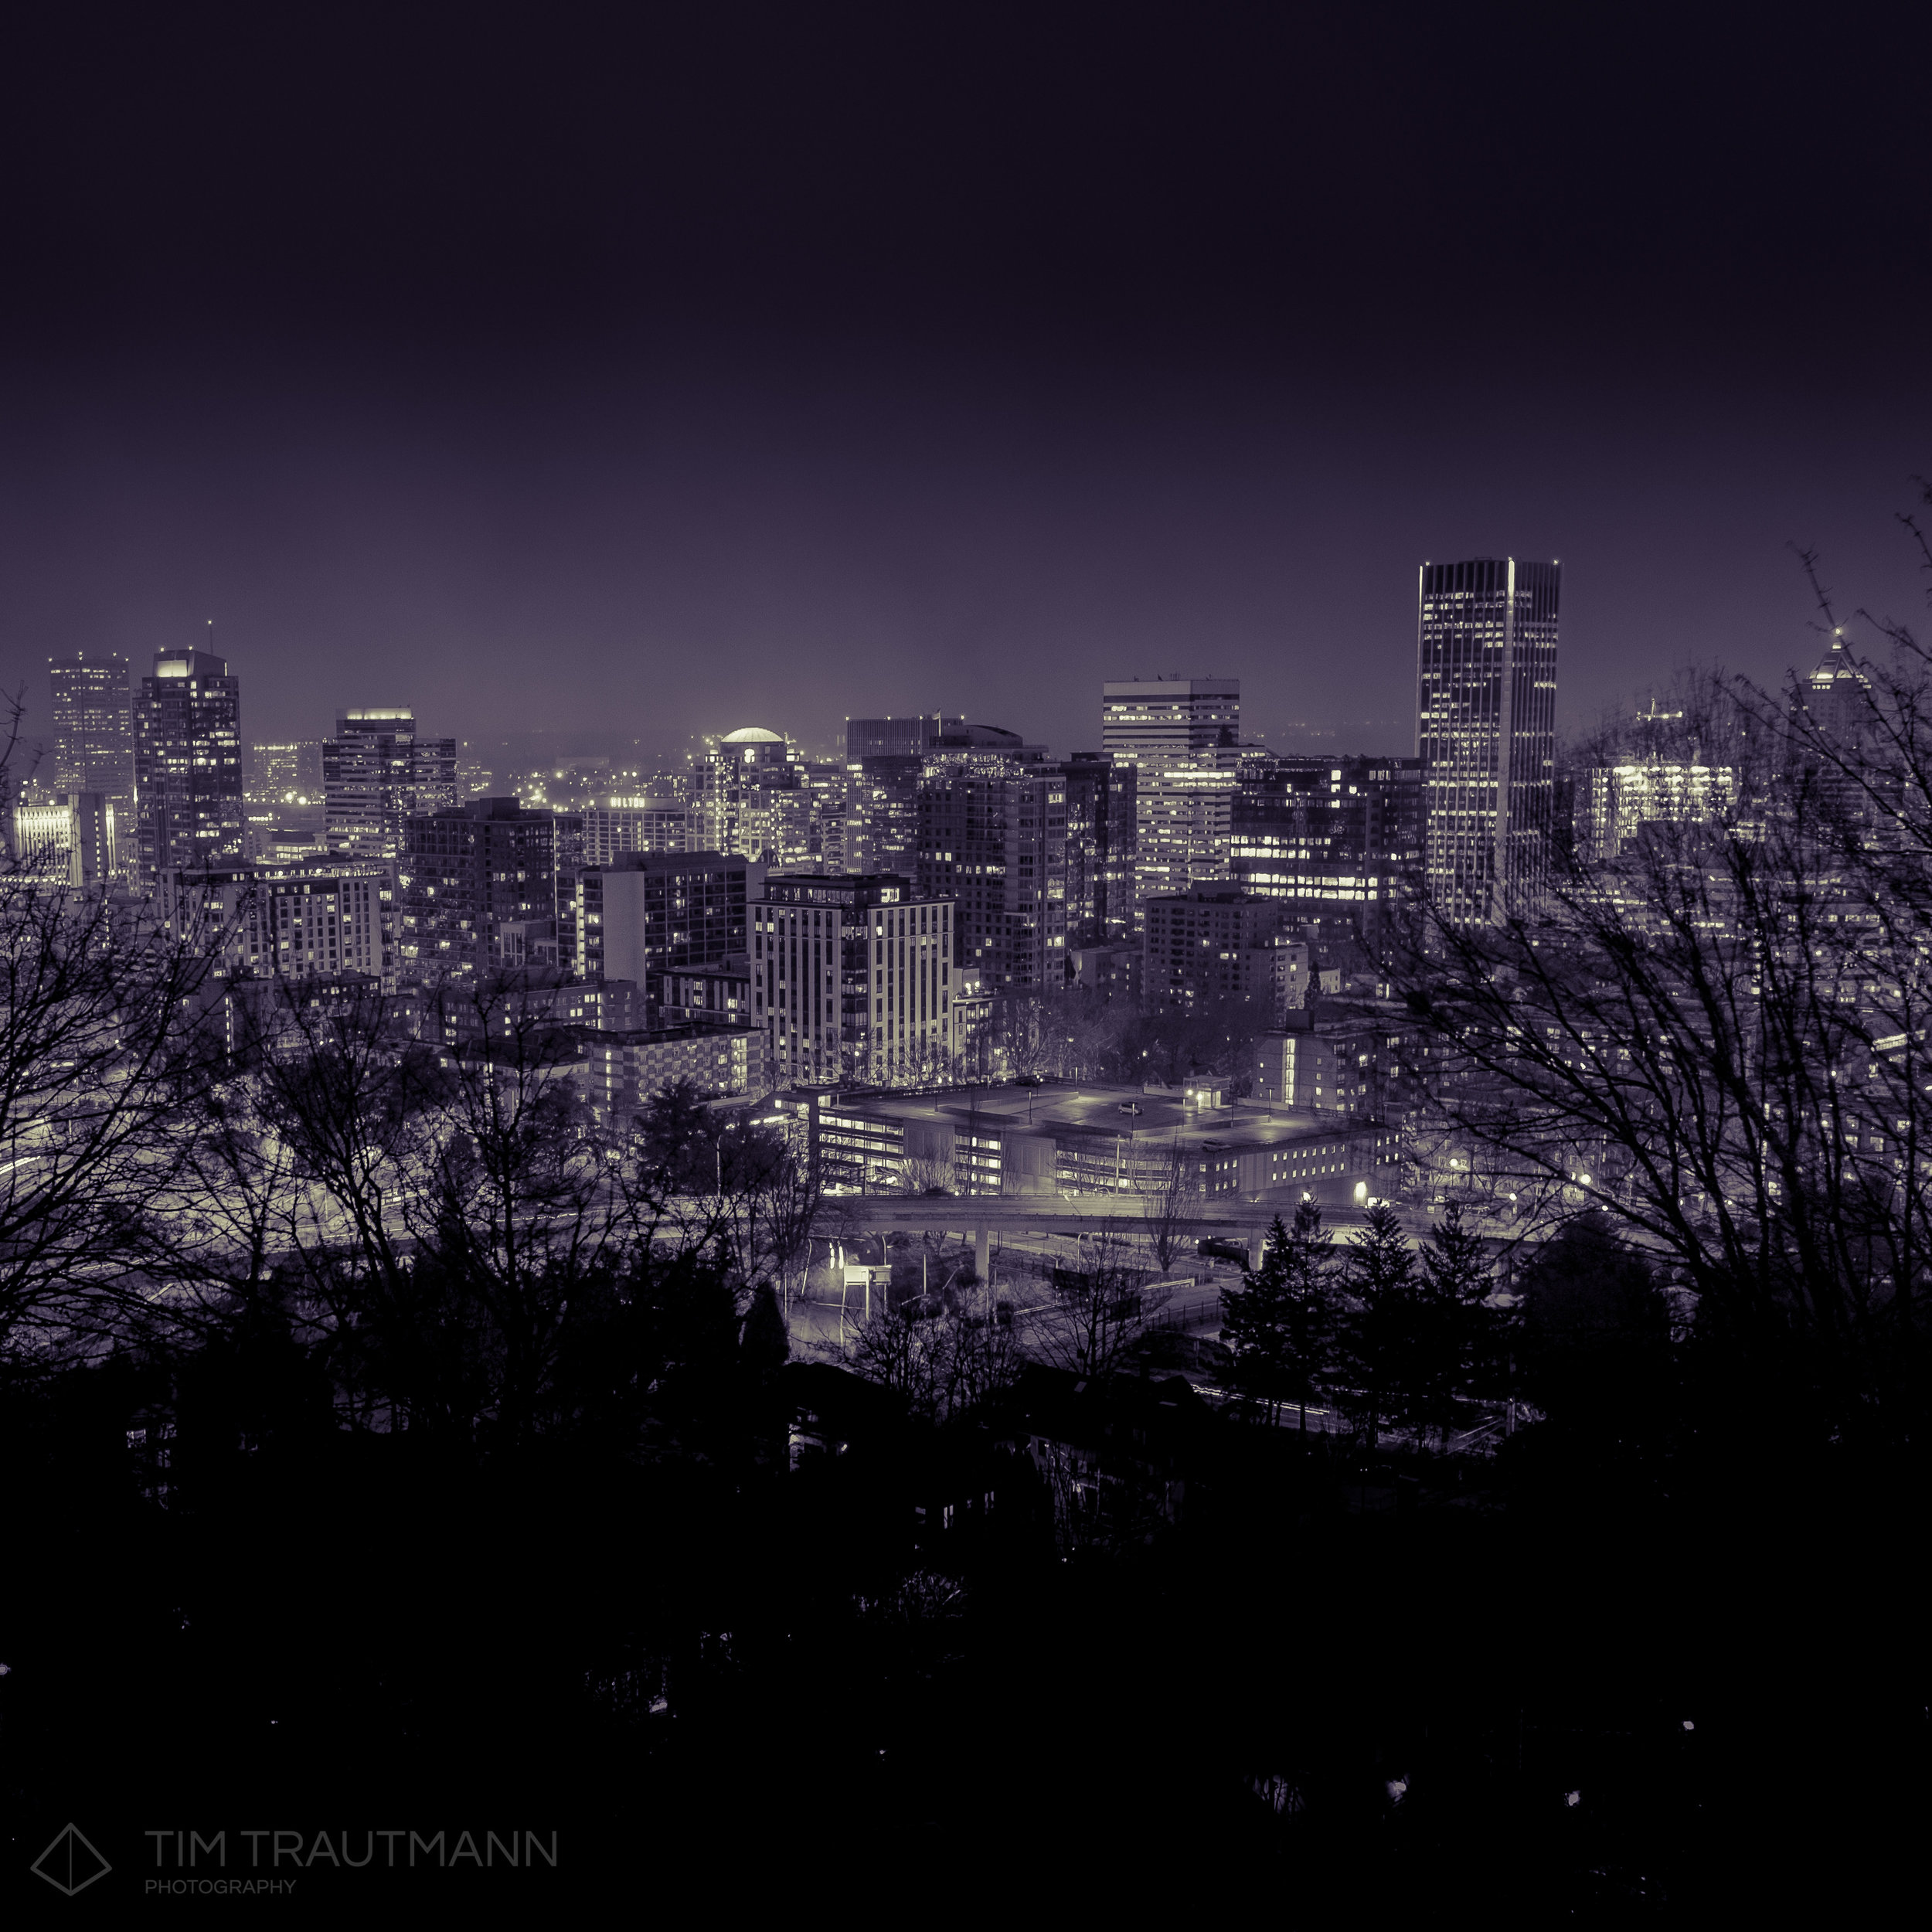 Downtown Portland seen from the west hills on a frigid winter night.